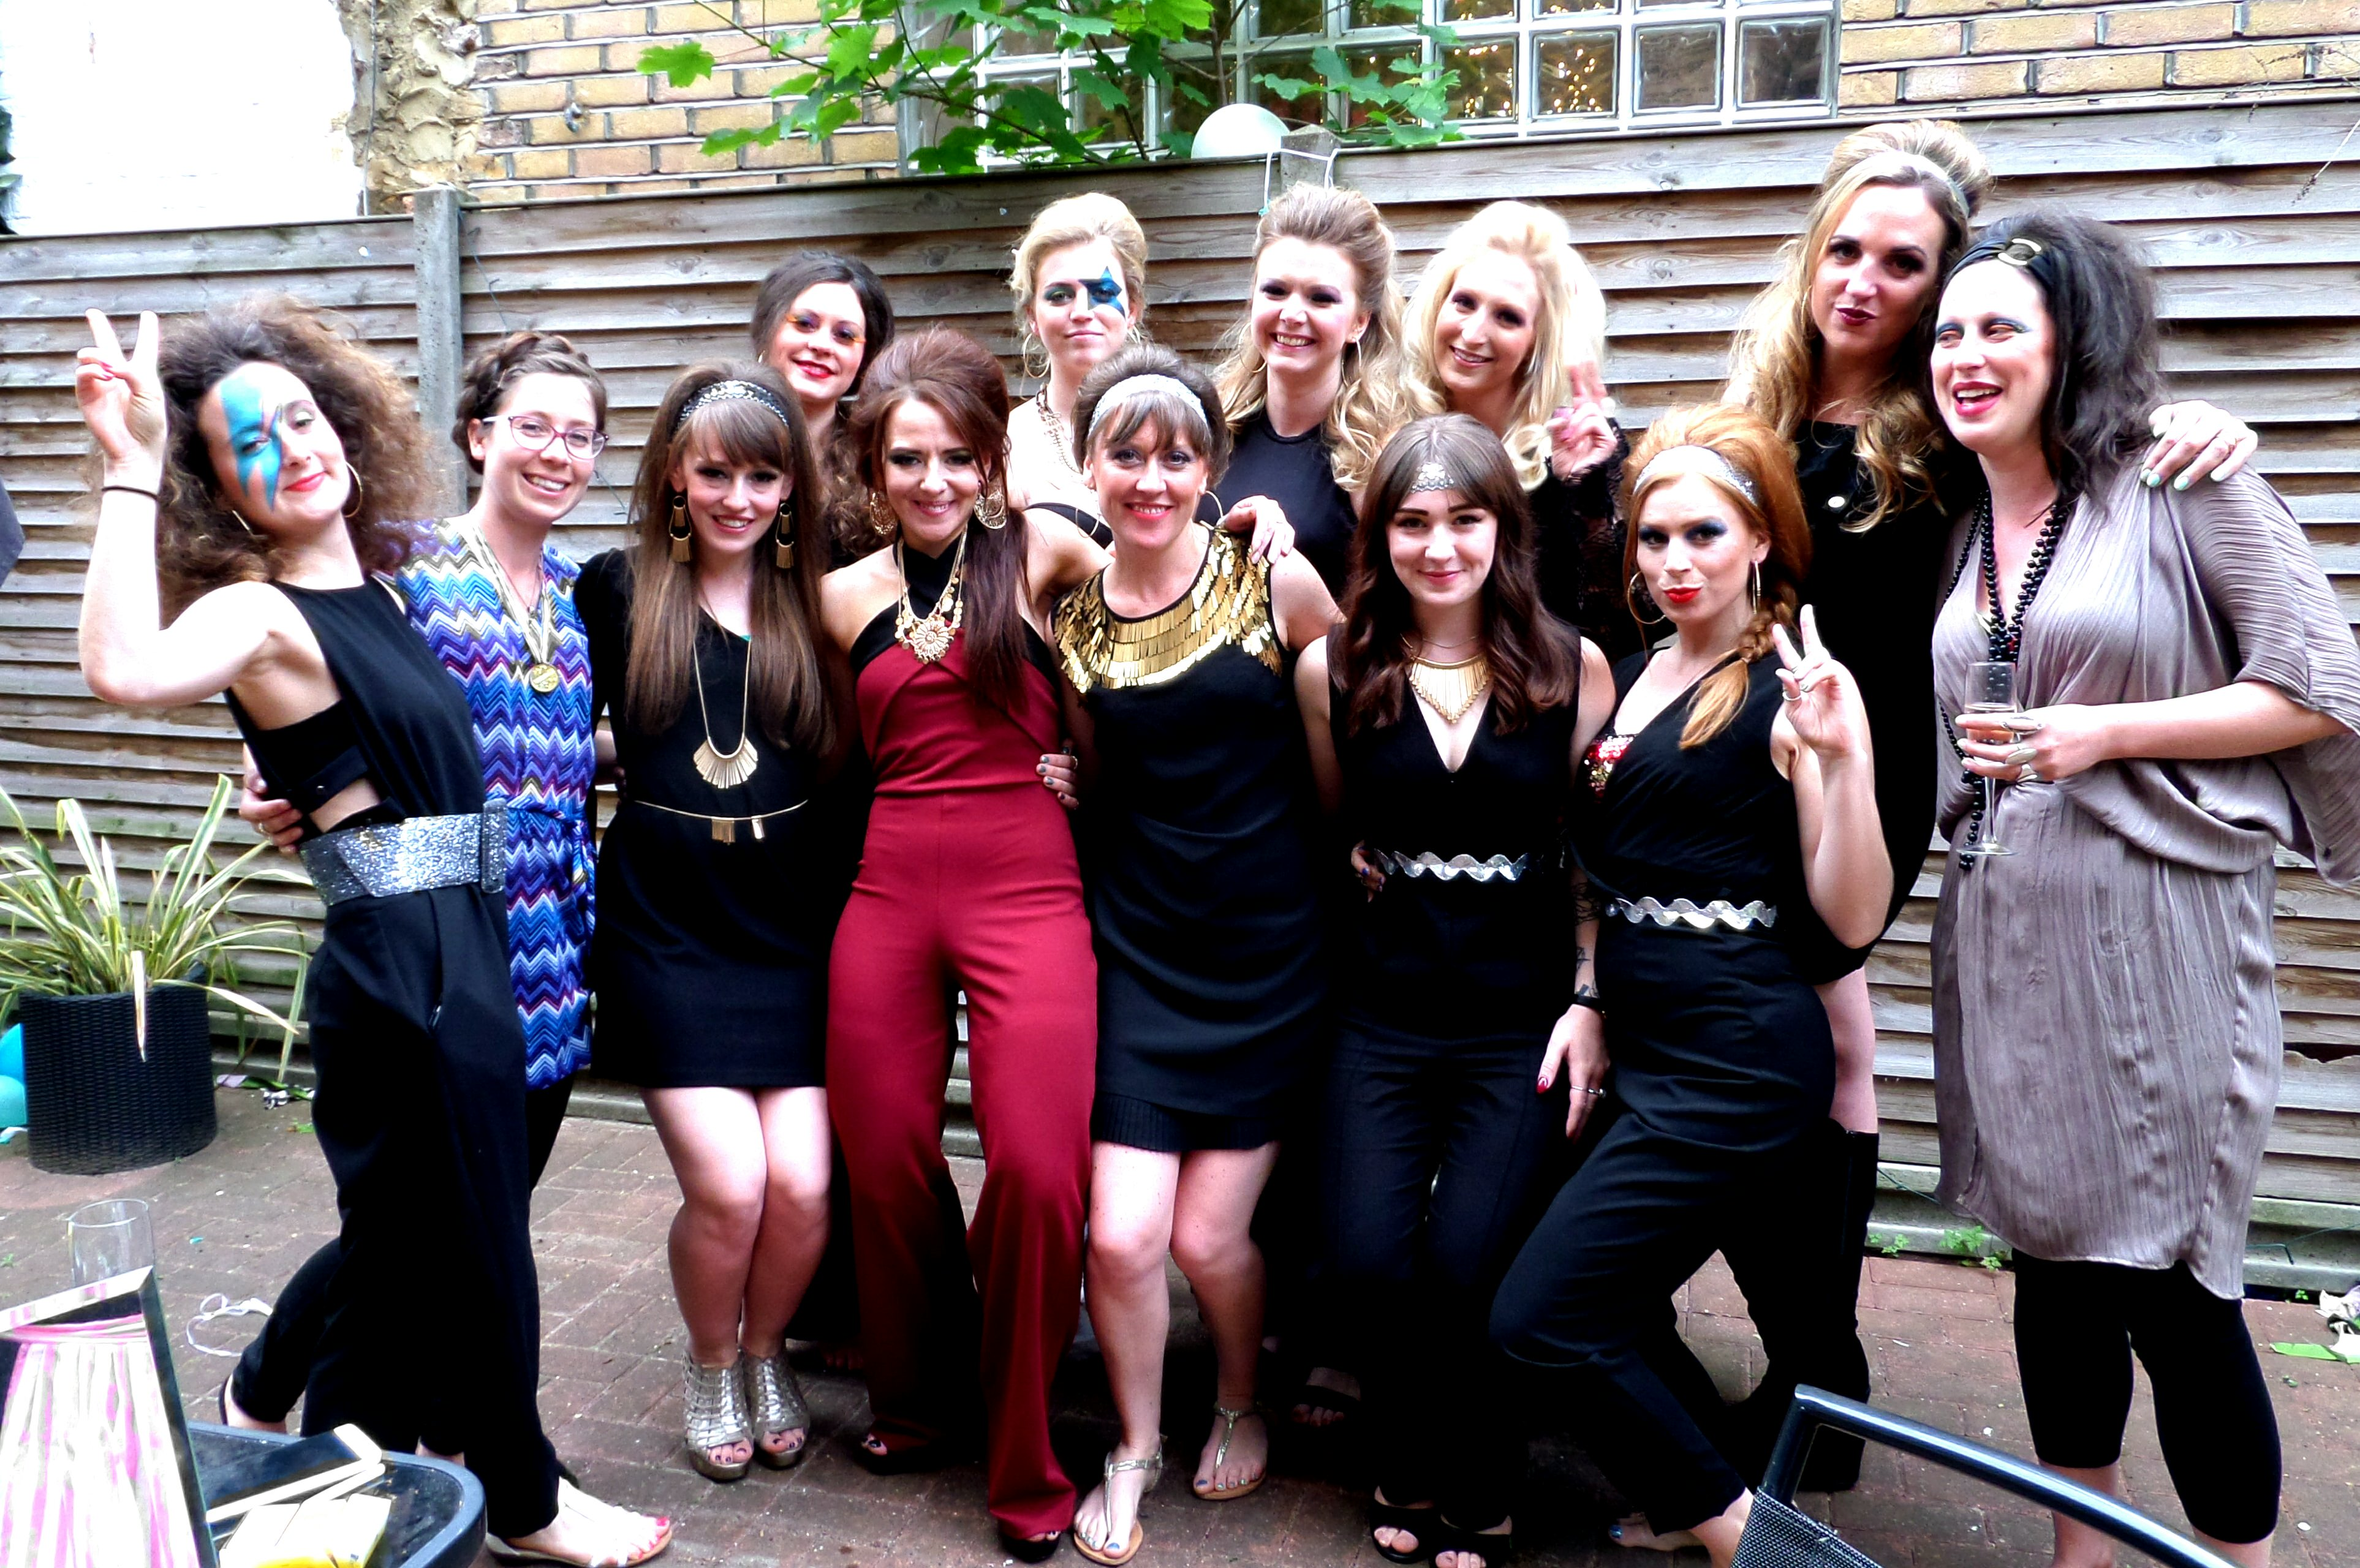 b45313ae7aaf5 A seventies disco hair and make up hen party - Charleston Dance ...